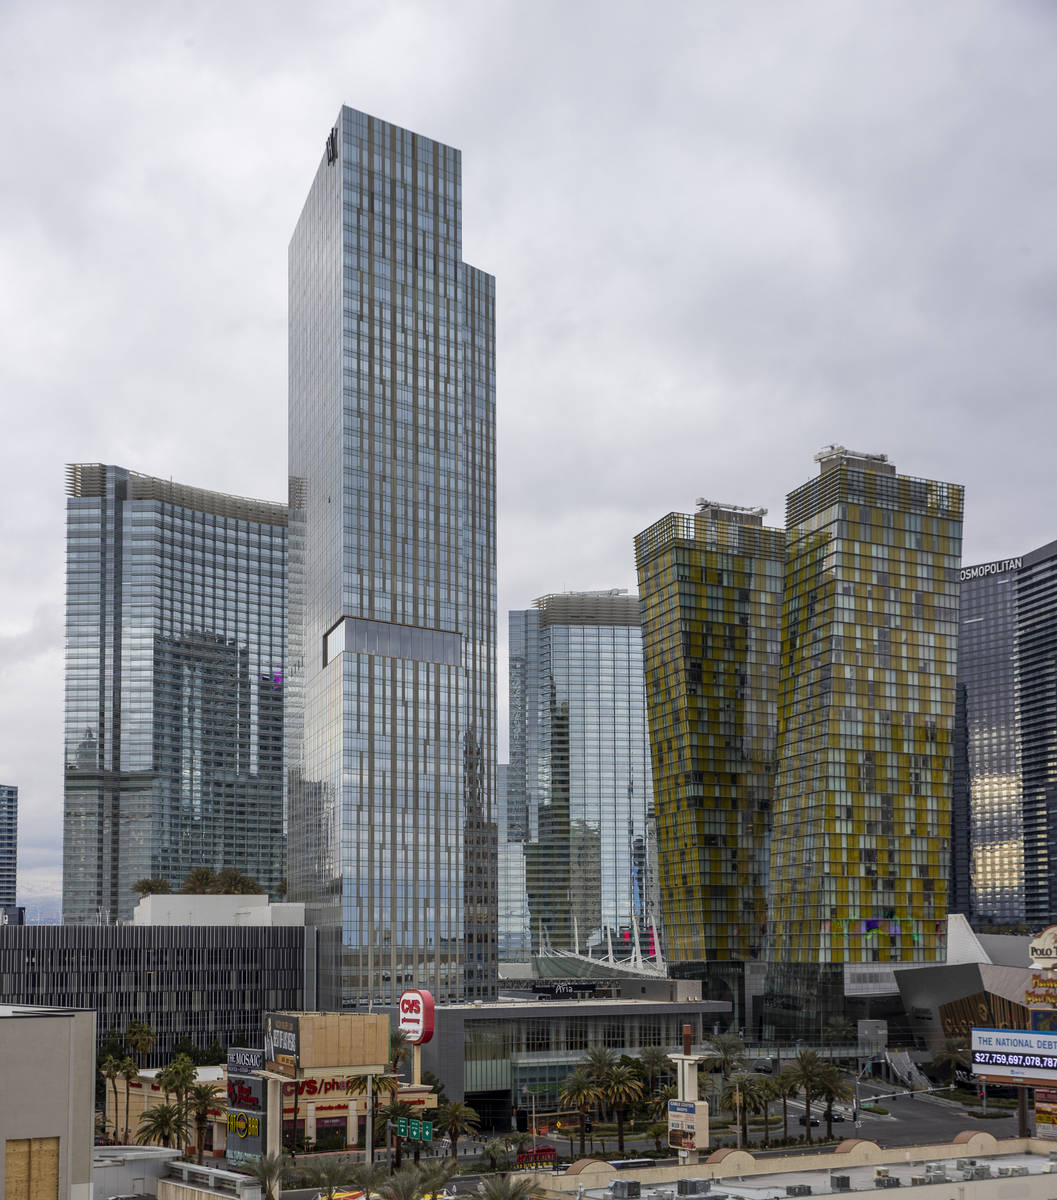 The Waldorf Astoria, center, and the Veer towers, right, are some of the condos about the Las V ...